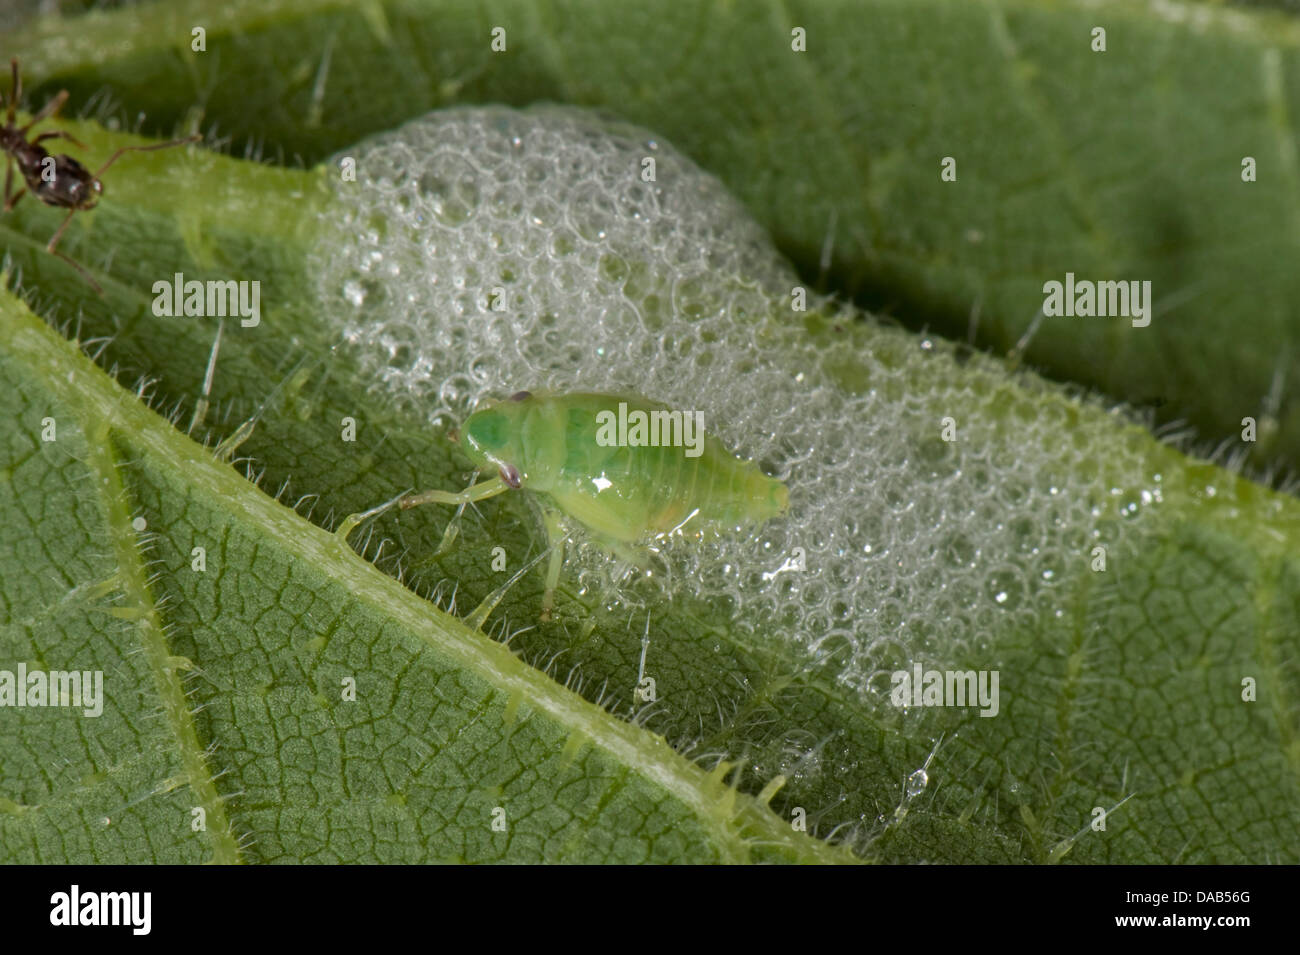 Cuckoo spit on a stinging nettle leaf with a green froghopper nymph, Philaenus spumarius - Stock Image